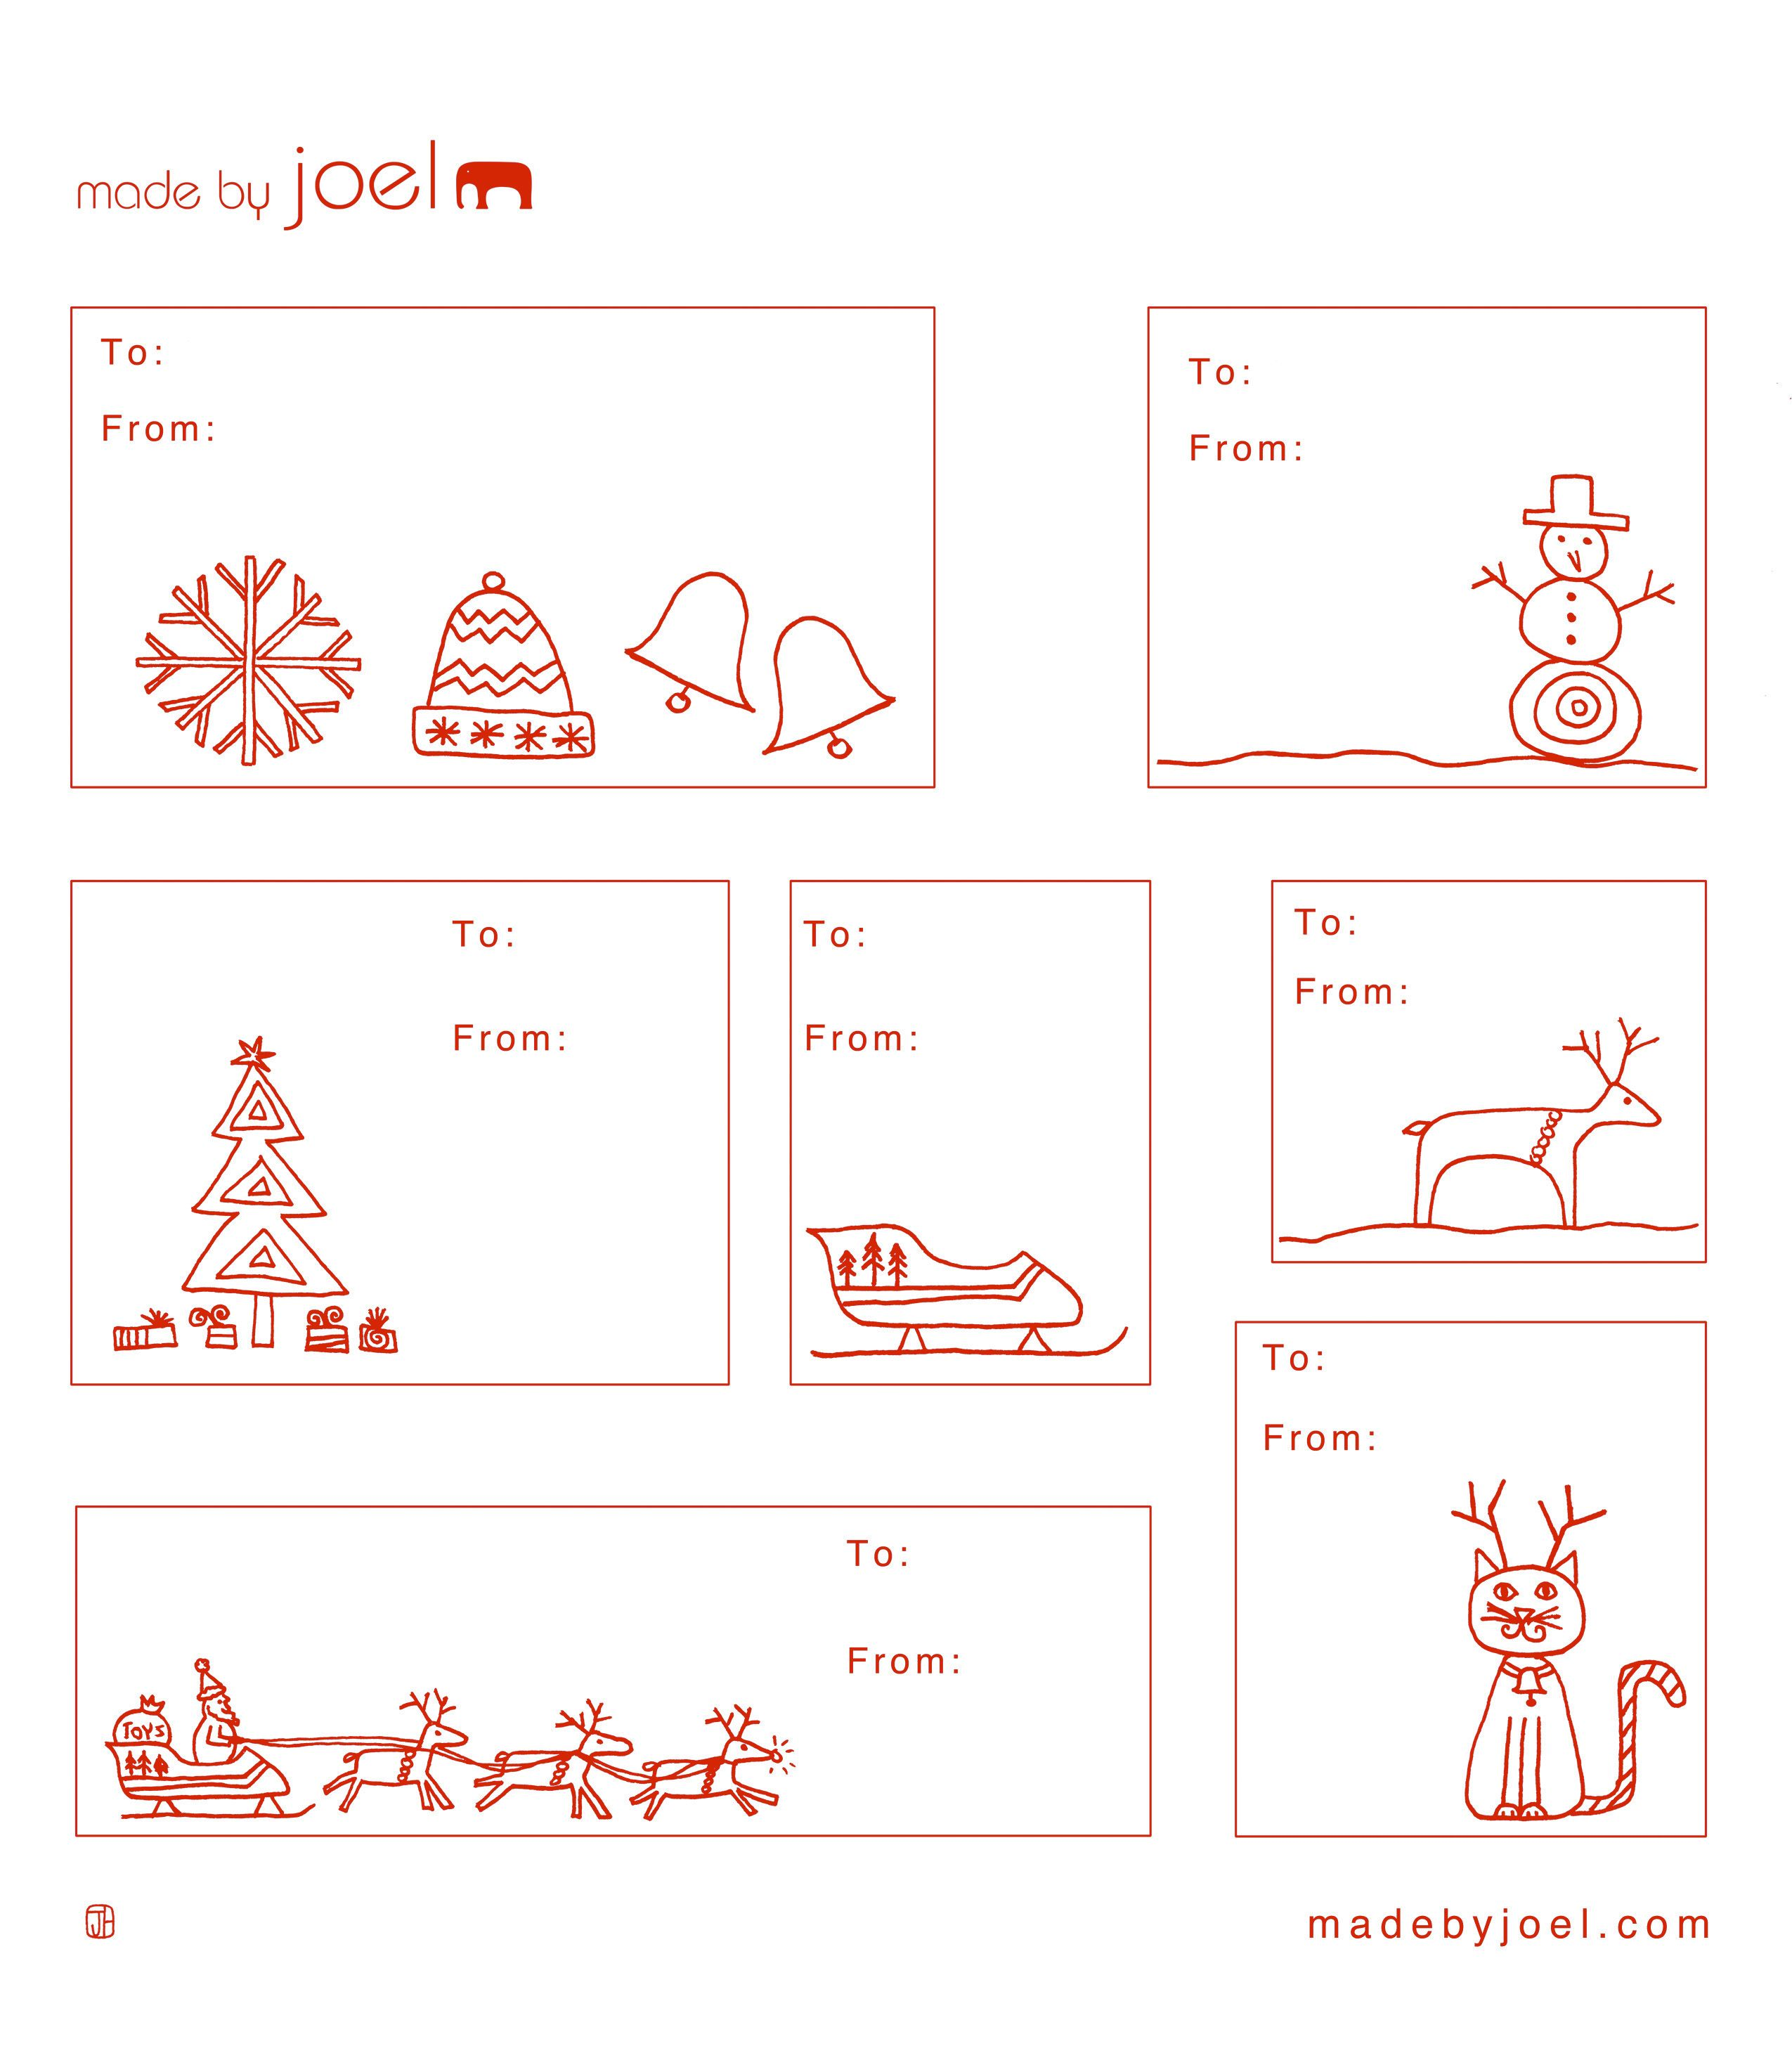 Free Printable Made By Joel Holiday T Tag Templates